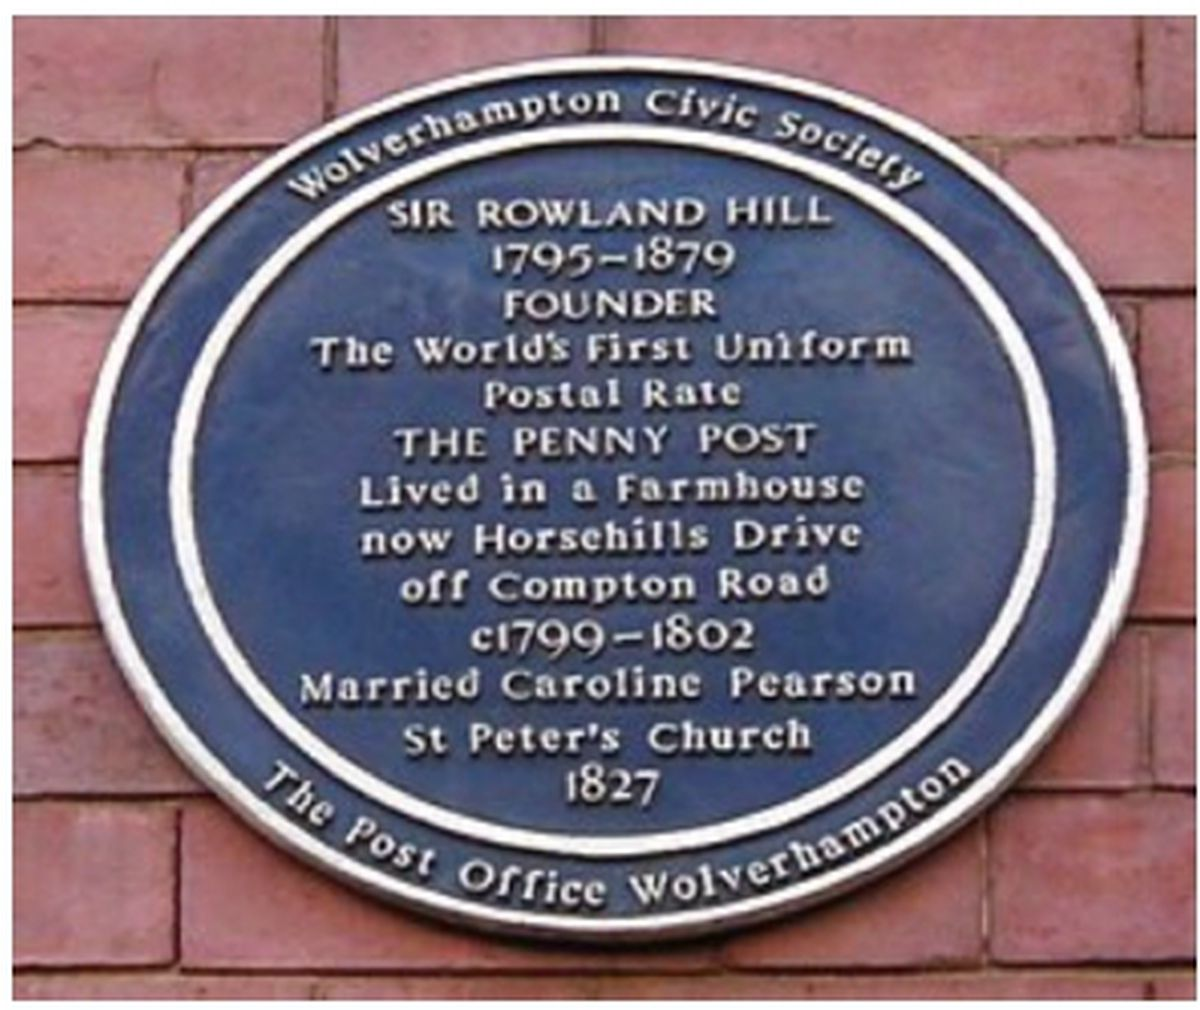 A plaque commemorates Sir Rowland Hill outside the former post office in Lichfield Street, Wolverhampton